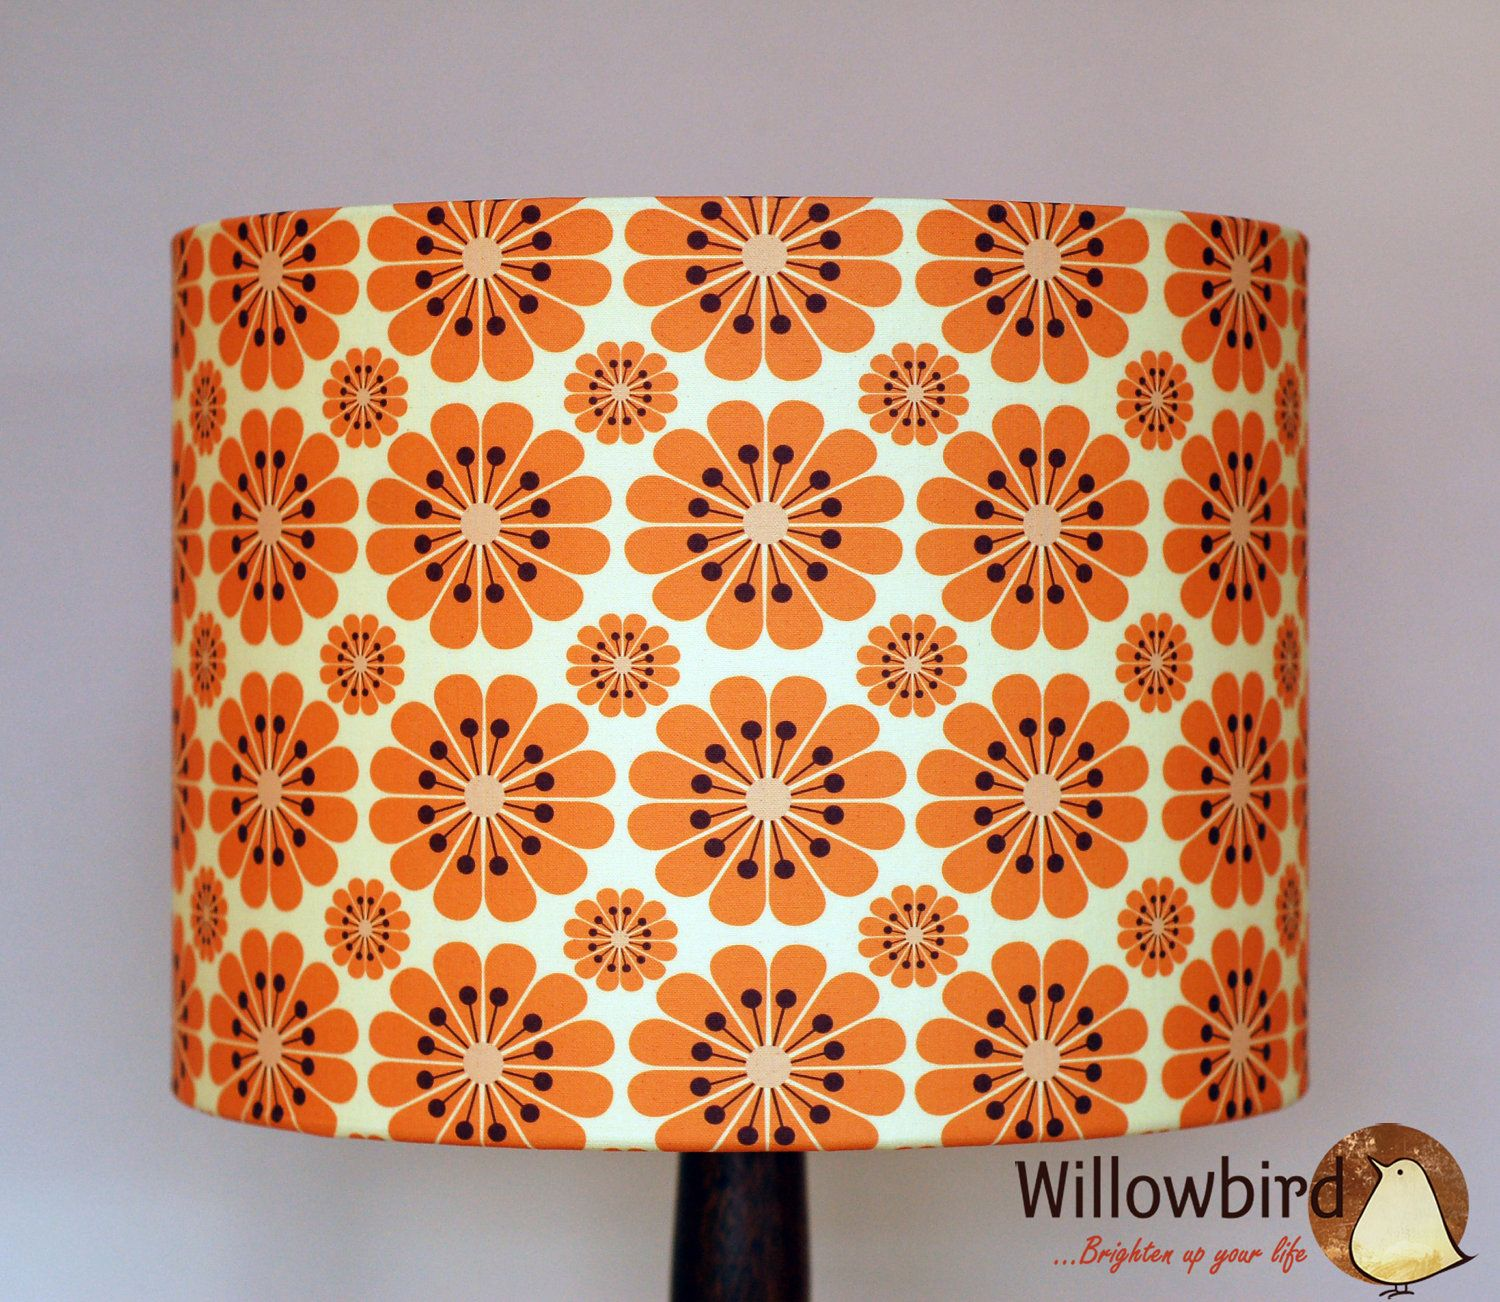 New retro lamp shade 30cm tangerine flower design 5565 via new retro lamp shade 30cm tangerine flower design 5565 via etsy aloadofball Gallery